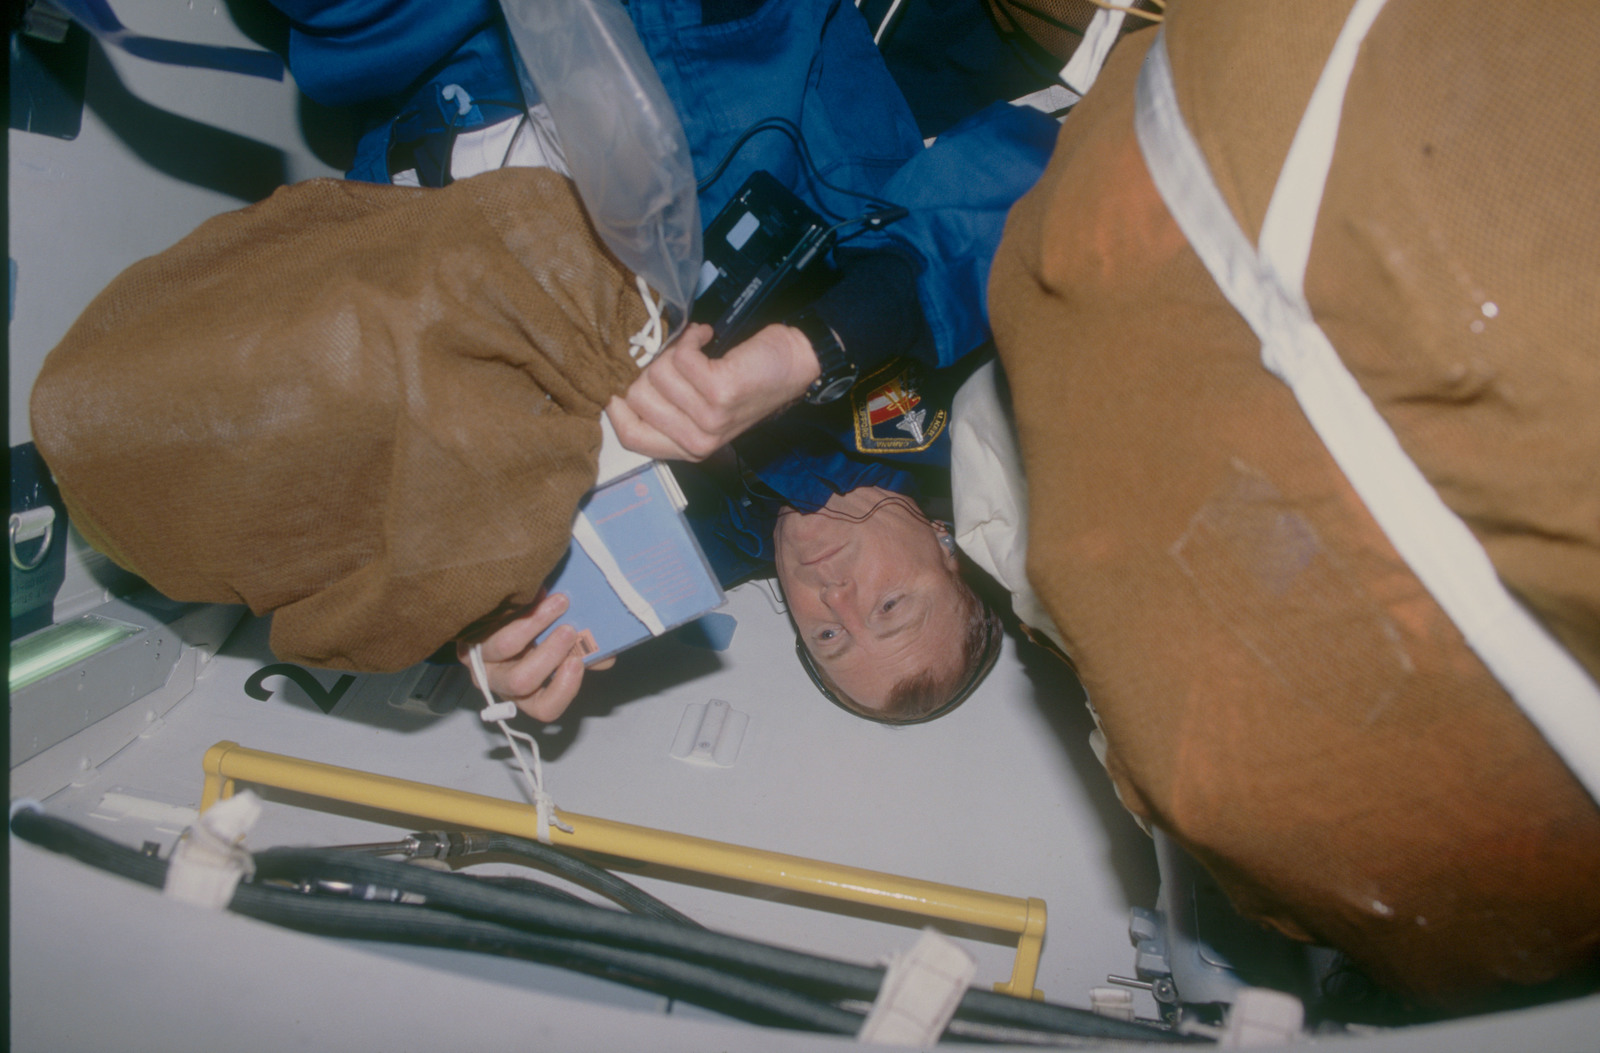 STS053-07-012 - STS-053 - Crewmember in the MDDK air lock with stowage bags